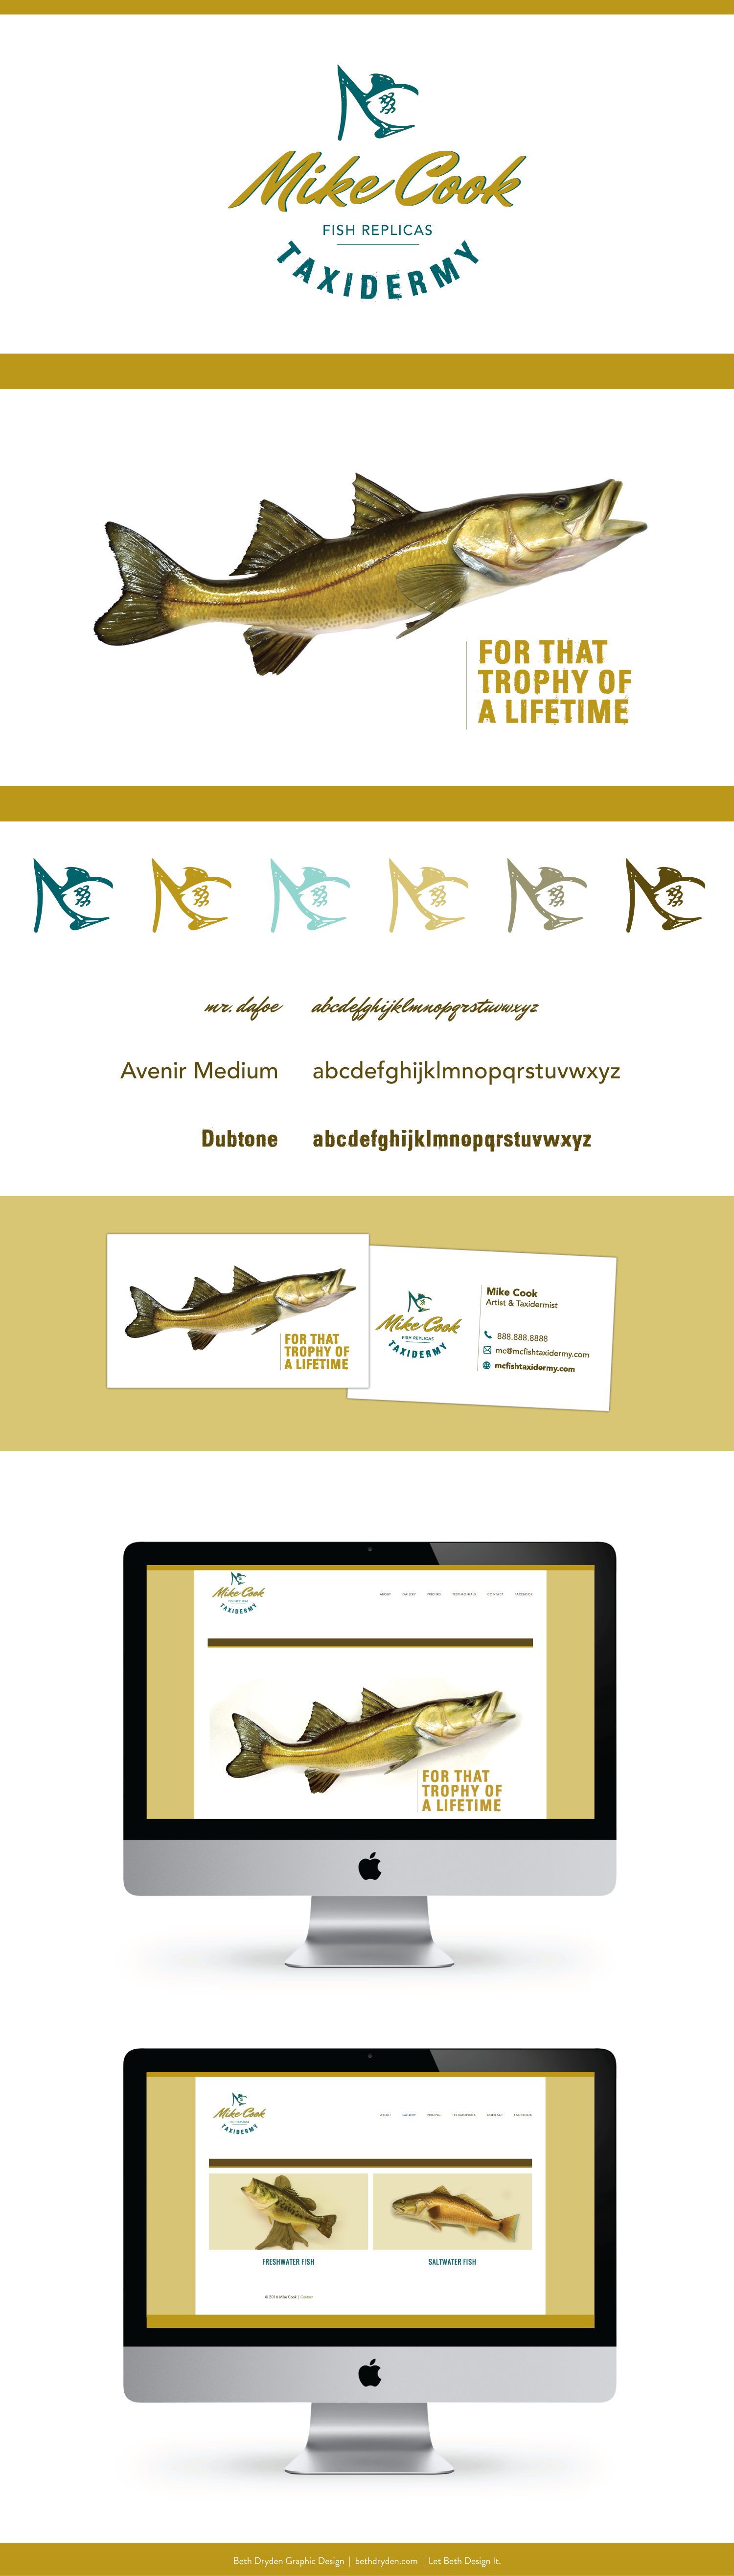 Logo & Web Design | Mike Cook Fish Replica & Taxidermy | Designed by ...